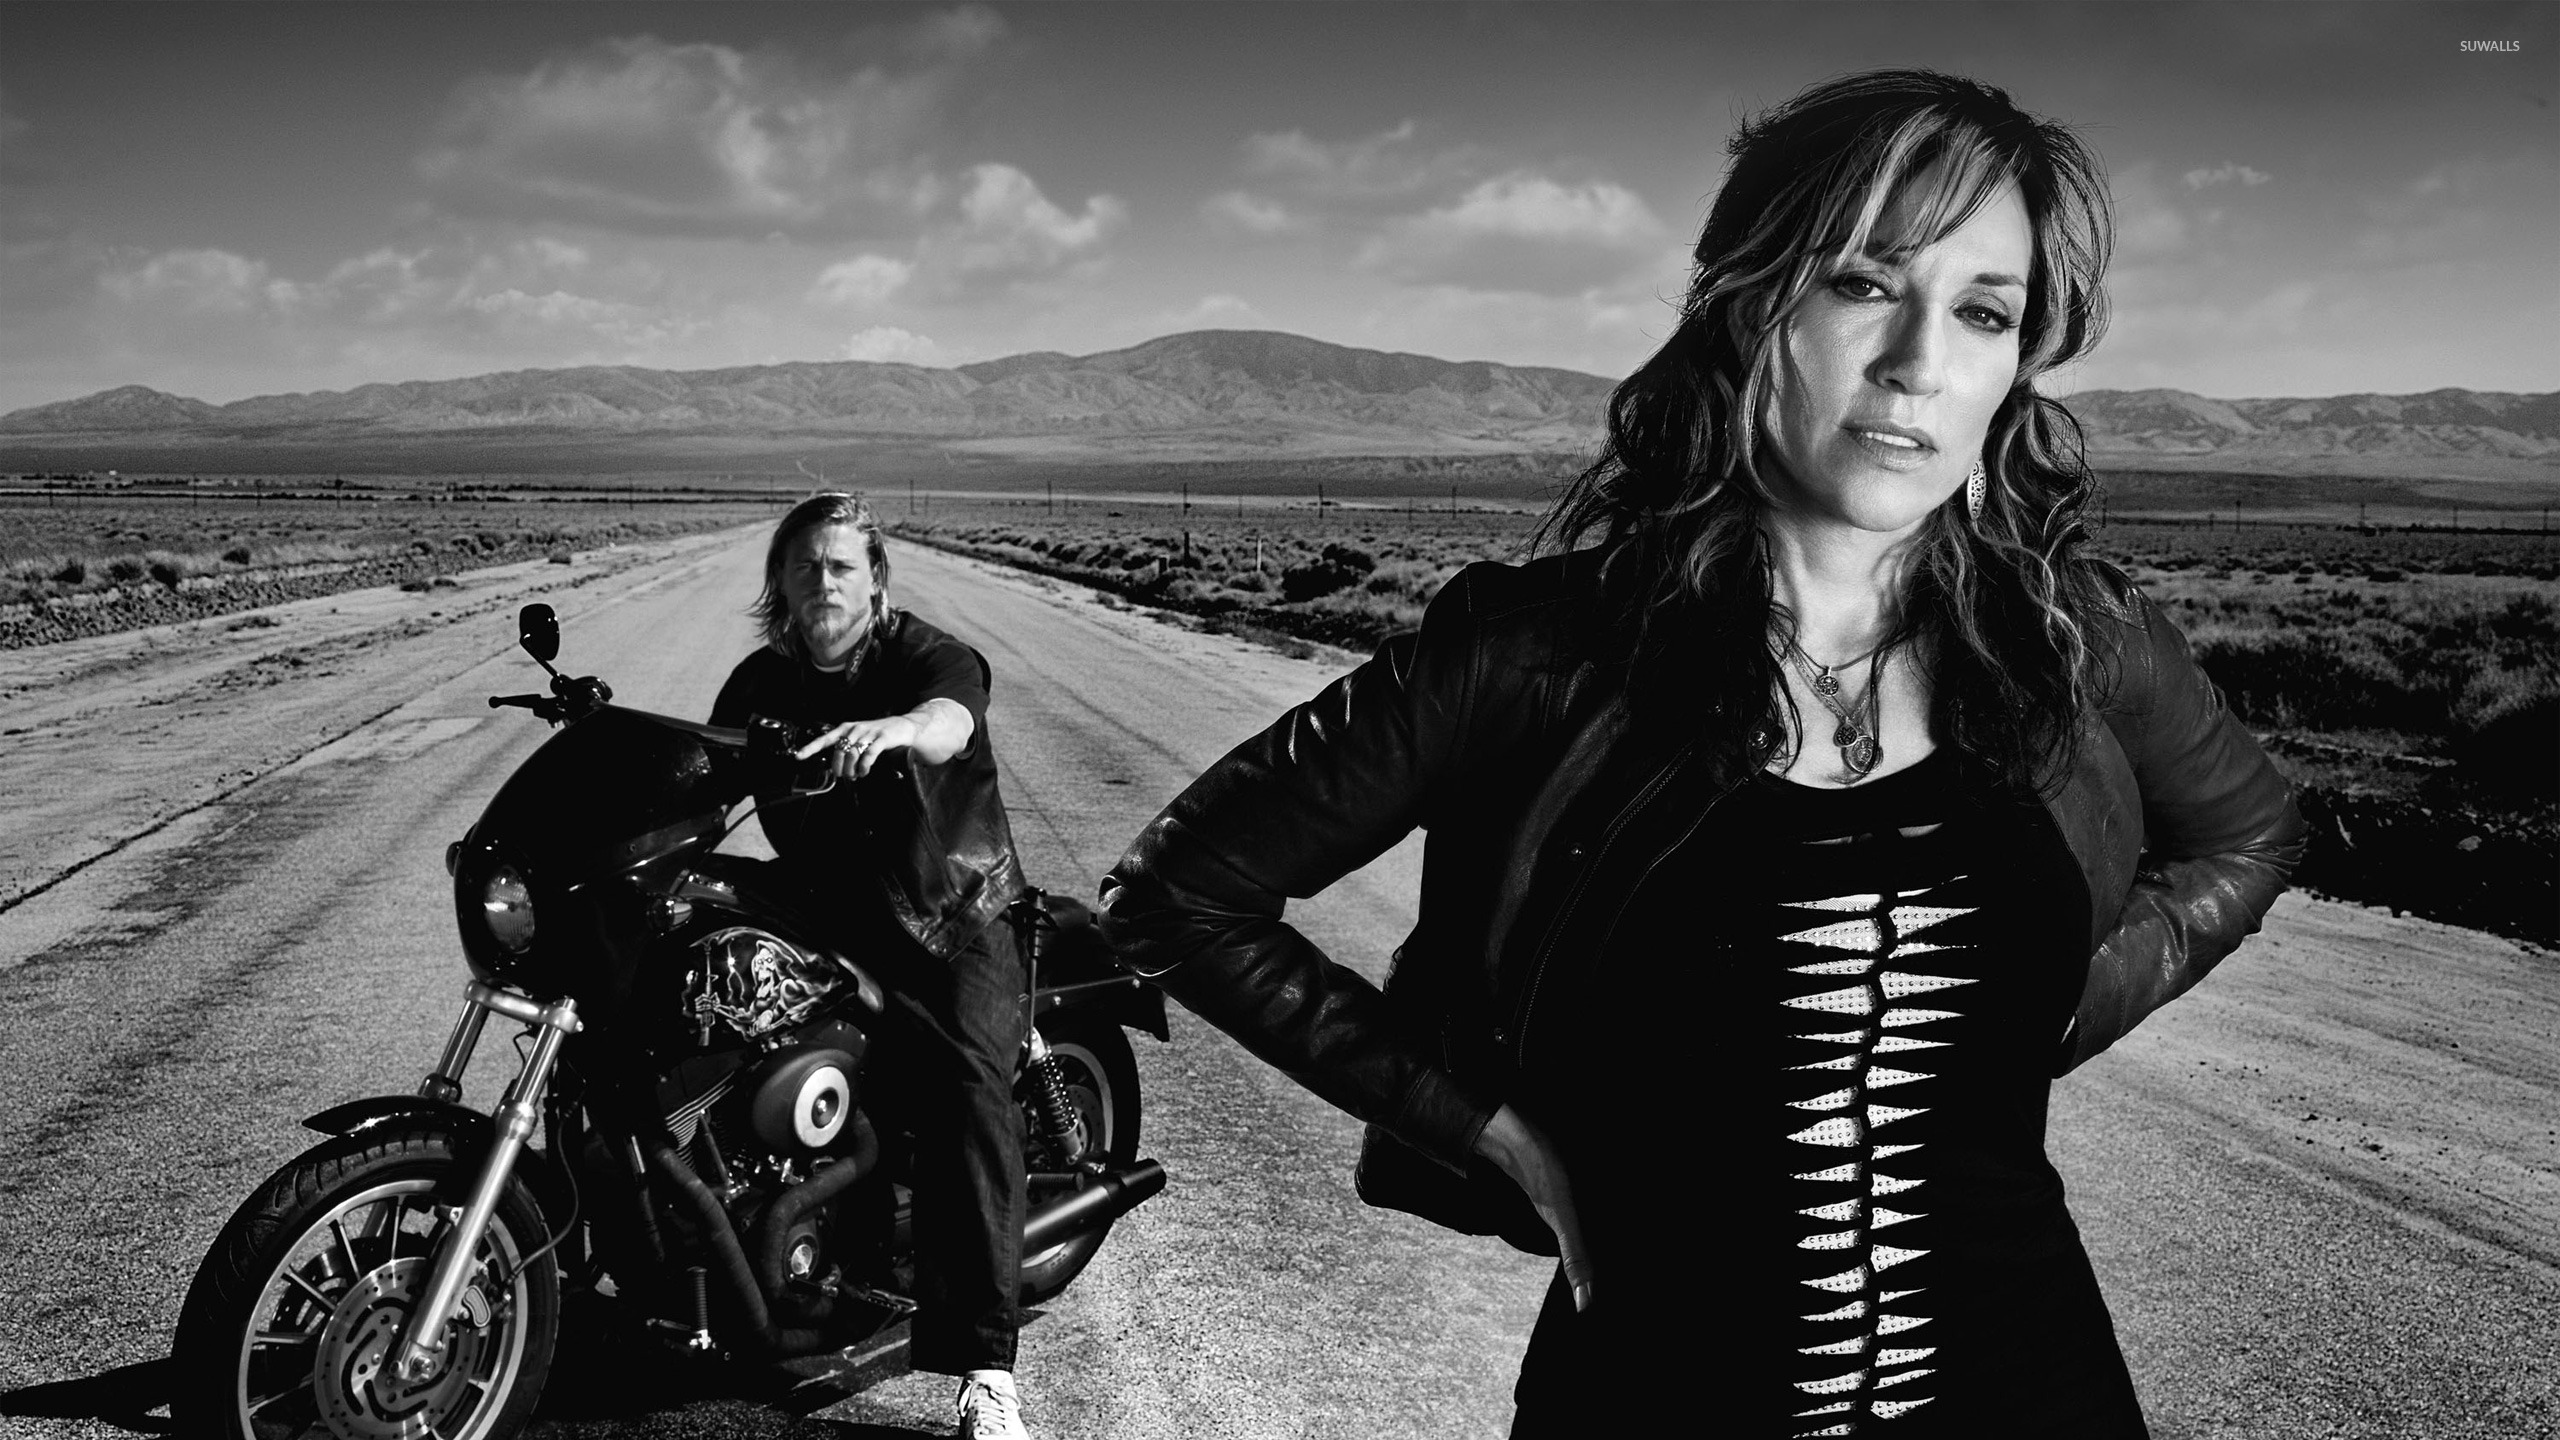 Gemma And Jax Sons Of Anarchy Wallpaper Tv Show Wallpapers